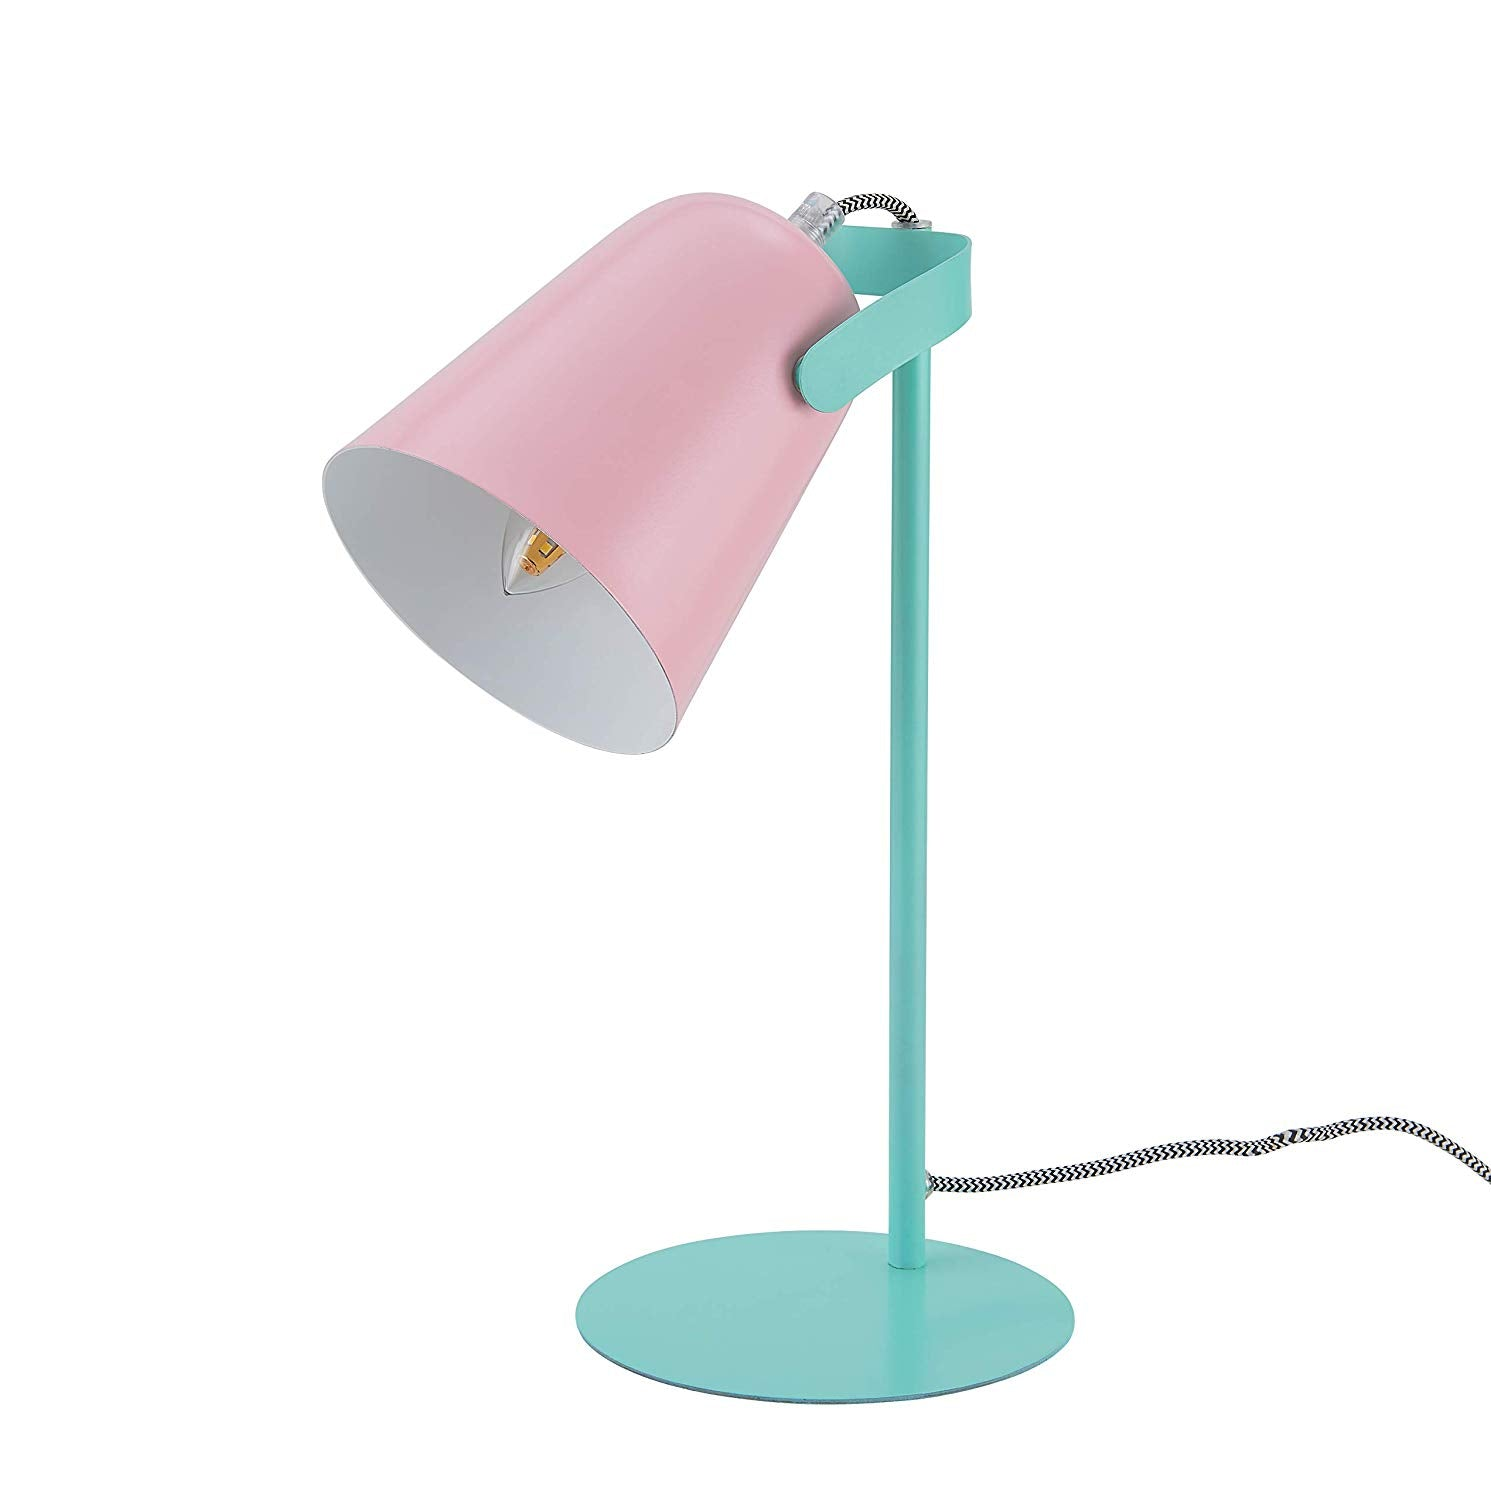 Archiology Bot Desk Lamp, Matte Pink and Green Table Light, Cute Pastel Design for Reading and Bedroom Lighting, 15""